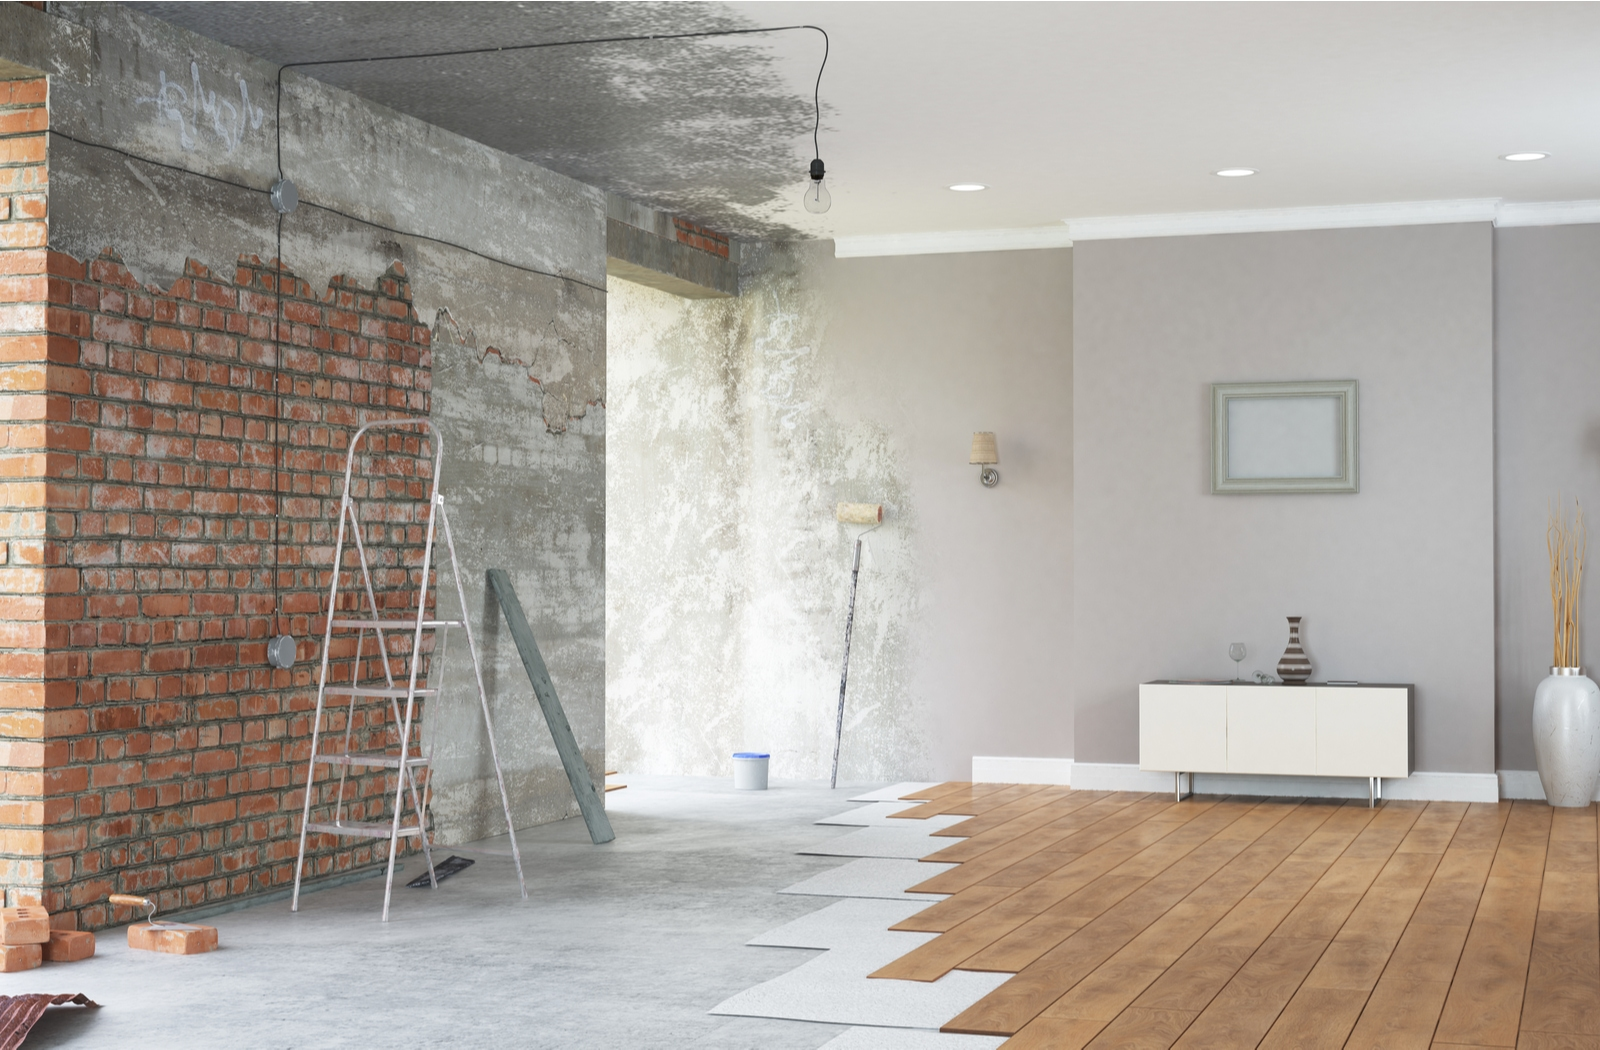 A before and after illustration of a home renovation